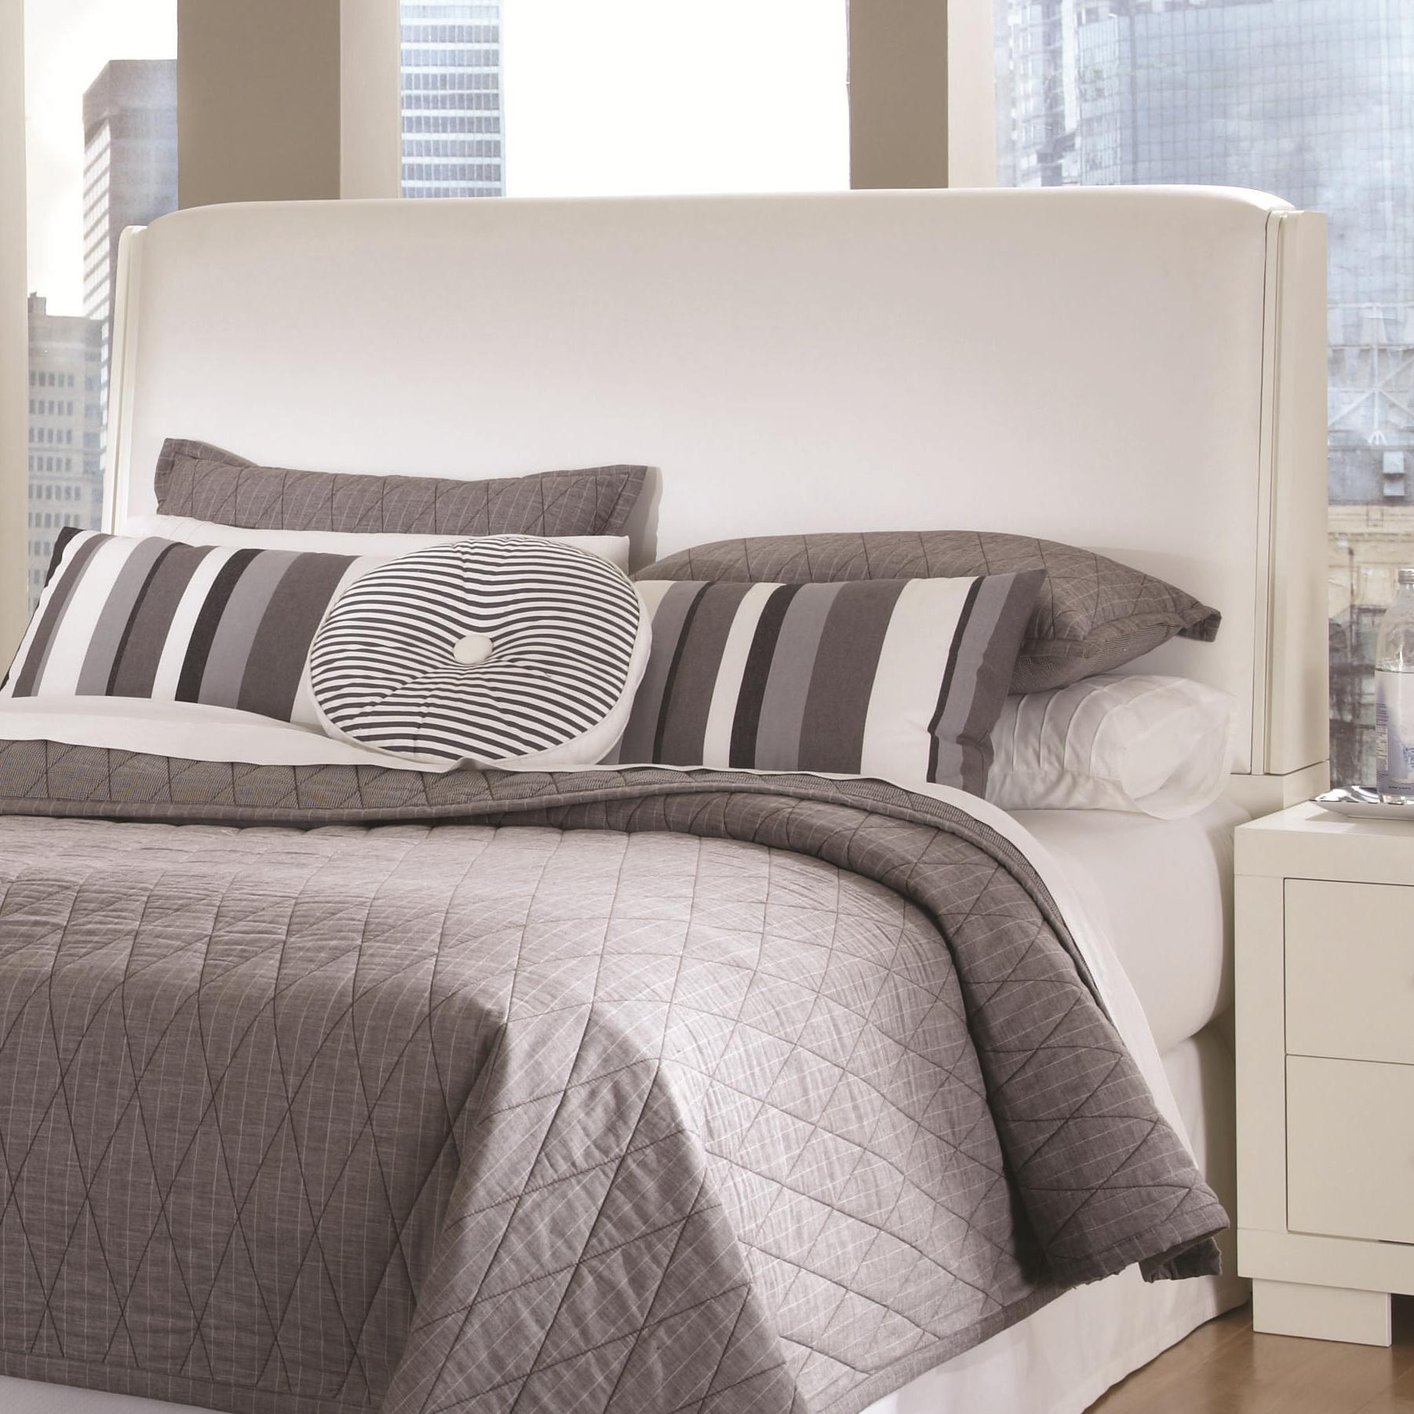 size considerable headboards dashing clean plus make upholstered eye on diy with in bedroom dw an bed lines full king image your headboard also hoxmse jitco